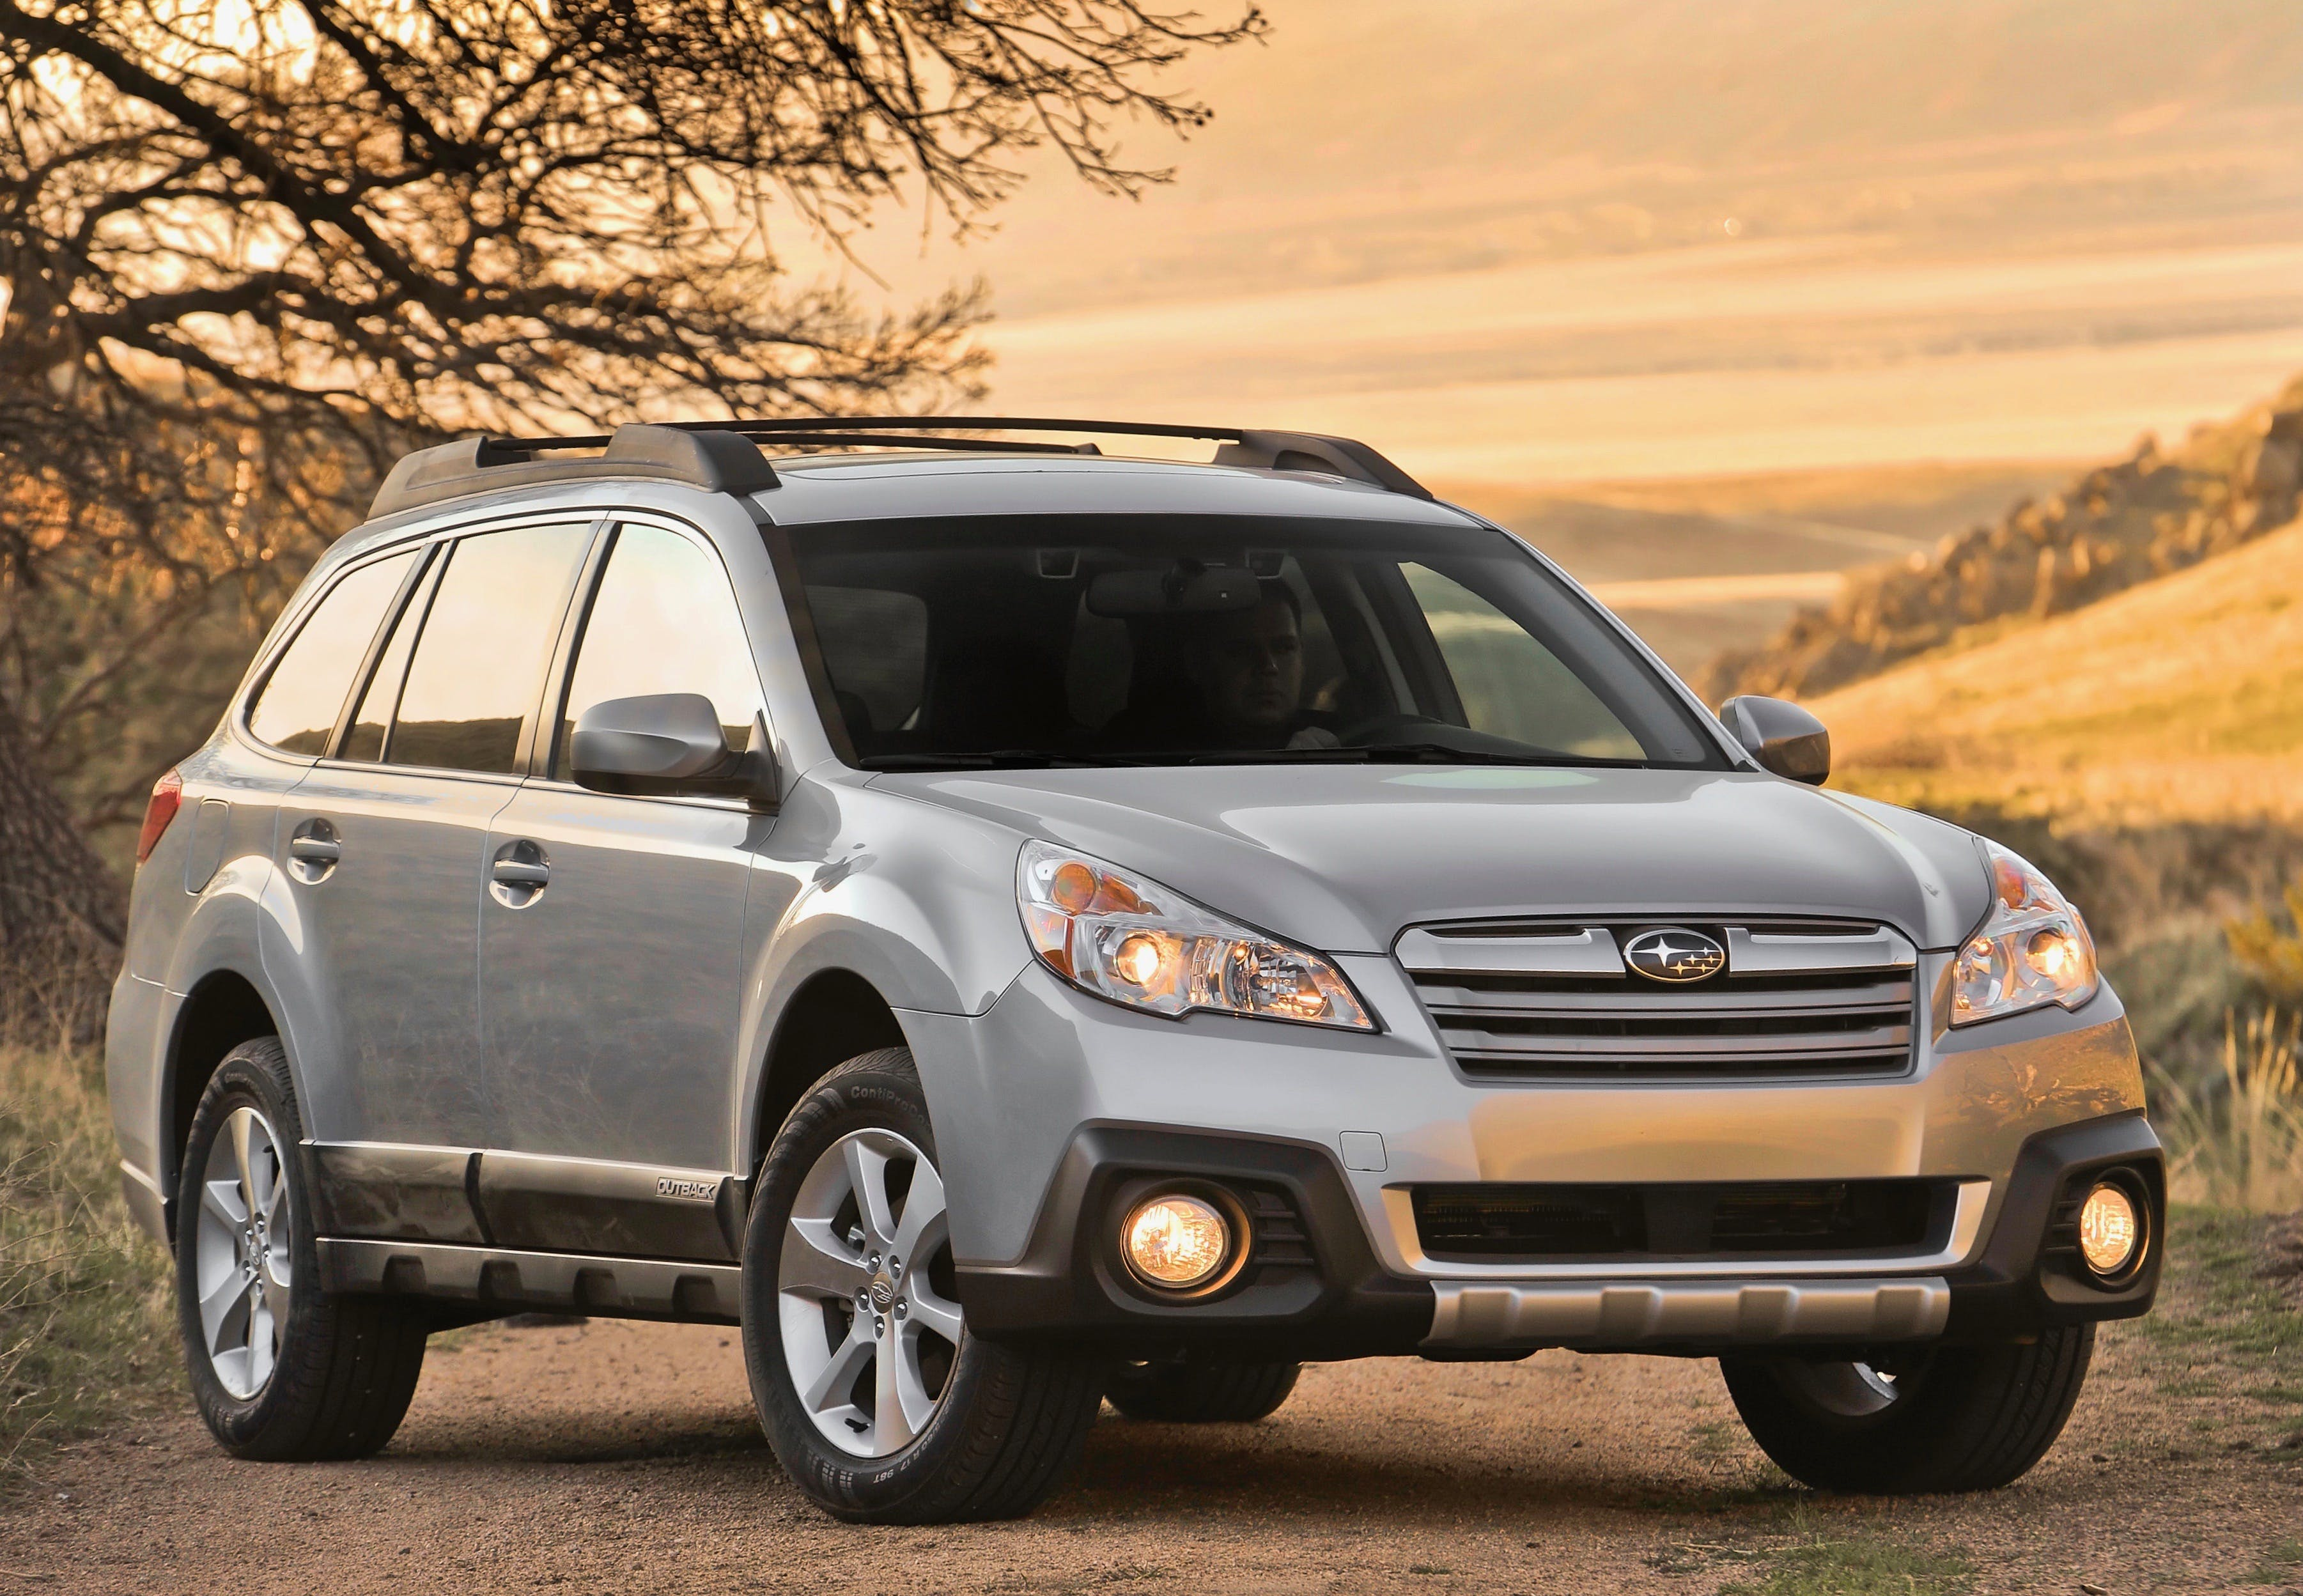 An Inside Look at the 2010-2014 Subaru Outback